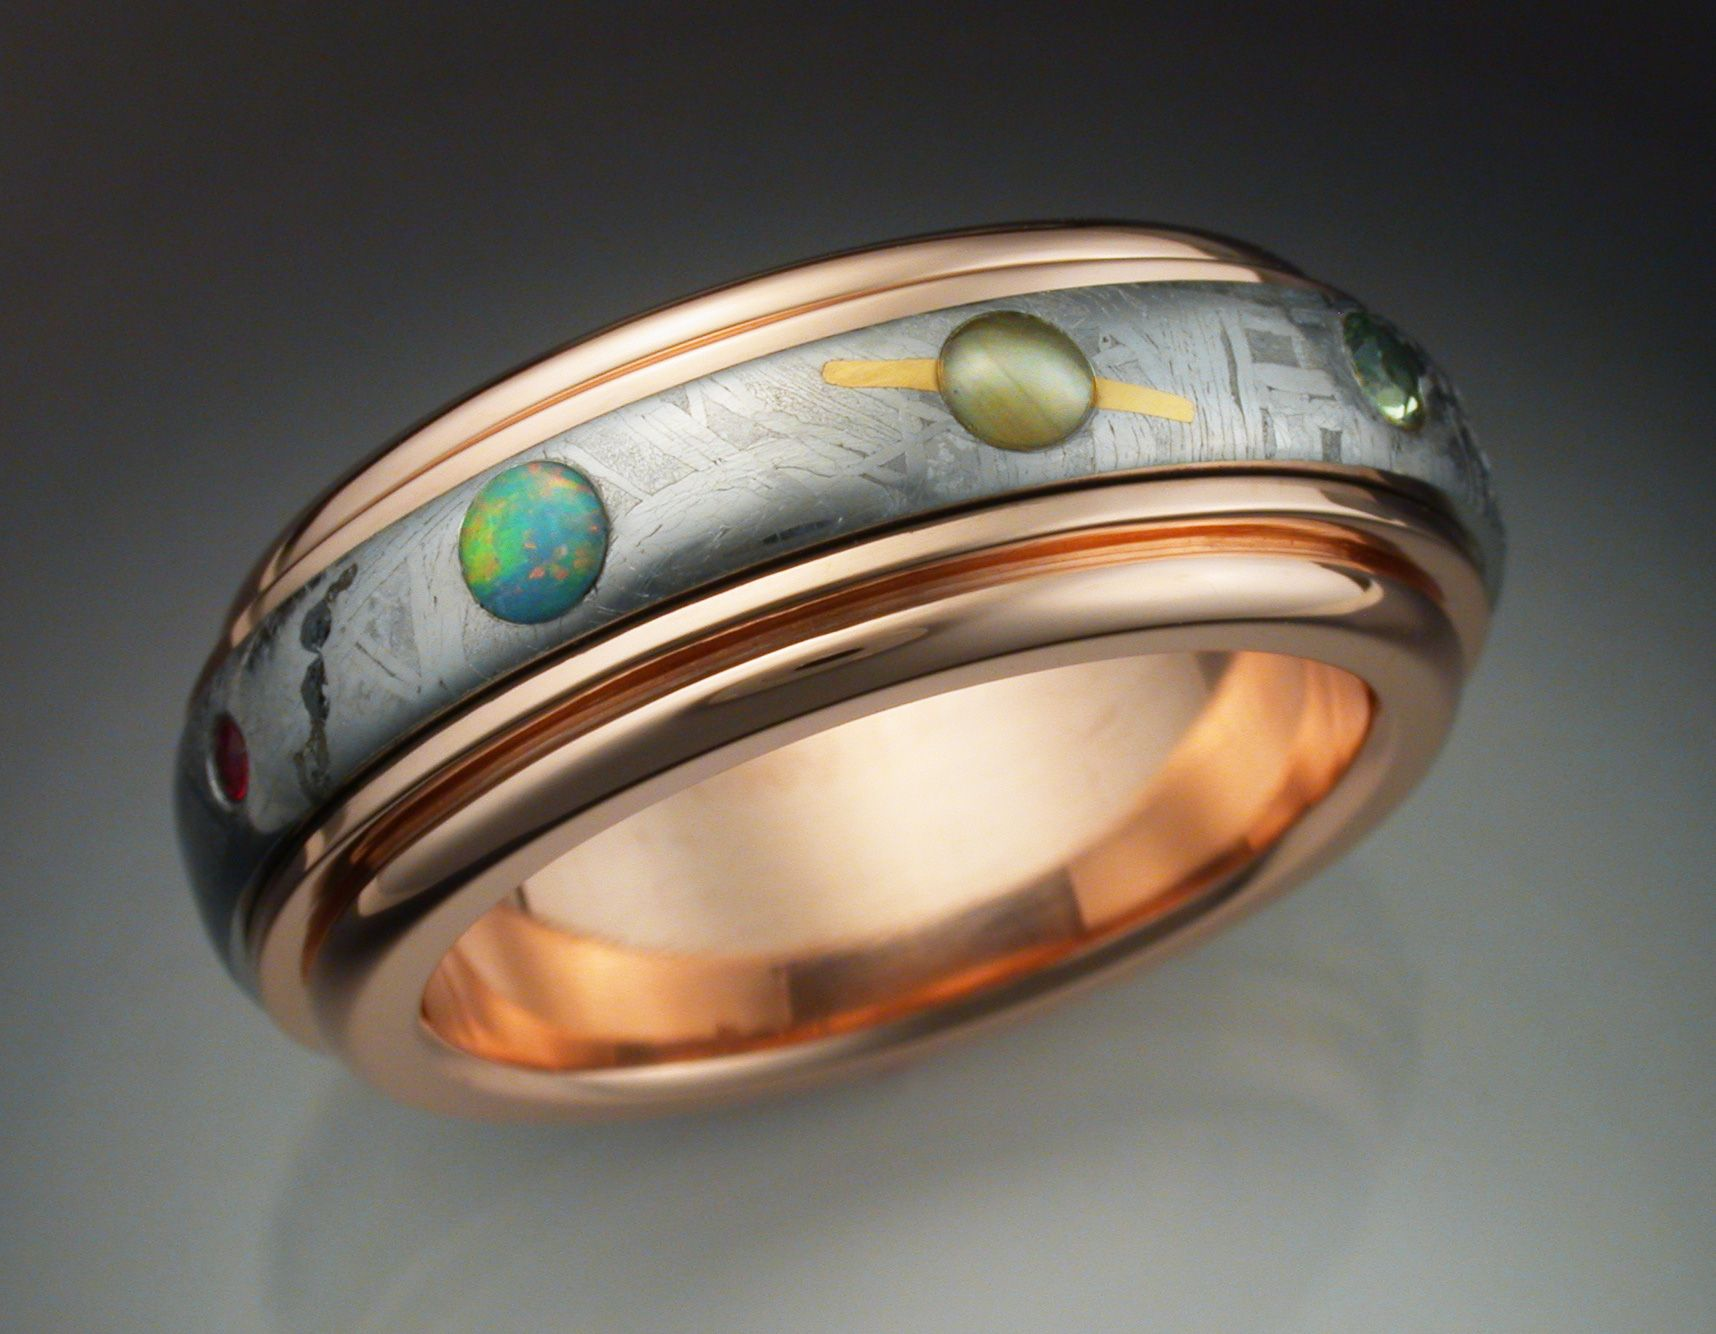 buy custom 14k rose gold nine planets ring with meteorite. Black Bedroom Furniture Sets. Home Design Ideas